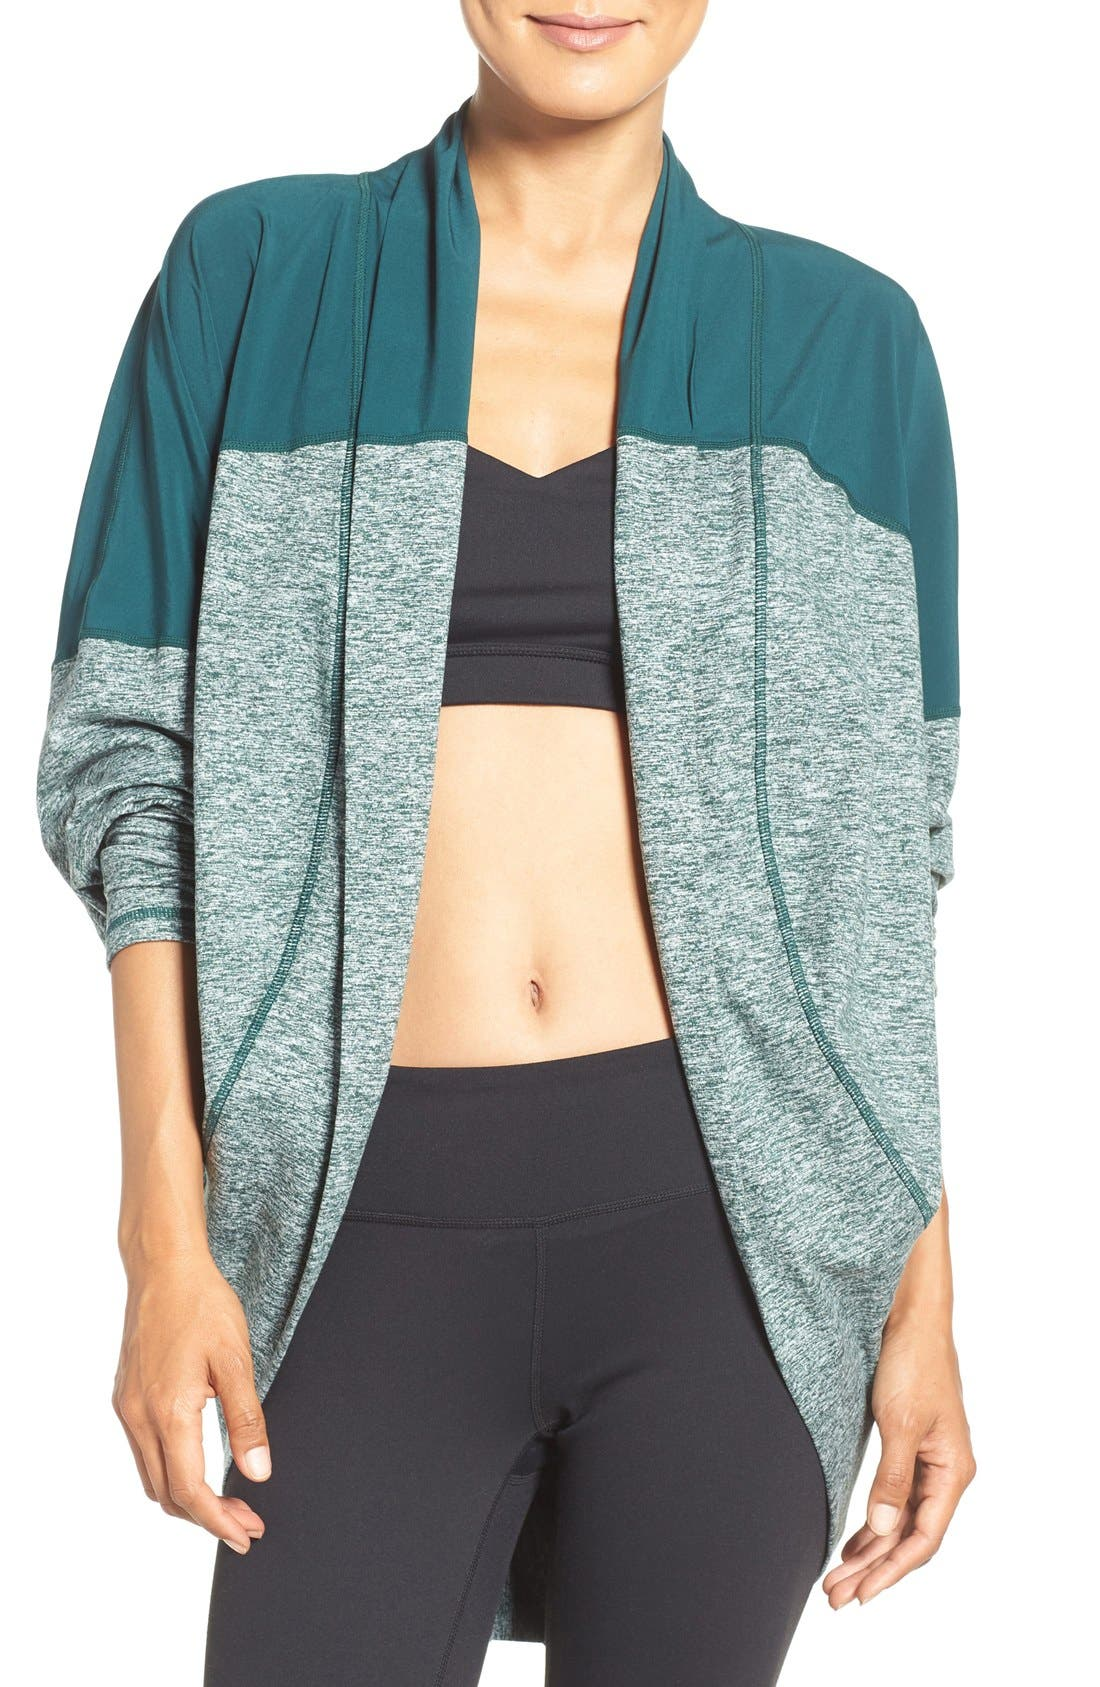 Alternate Image 1 Selected - Zella Reversible Colorblock Cocoon Cardigan